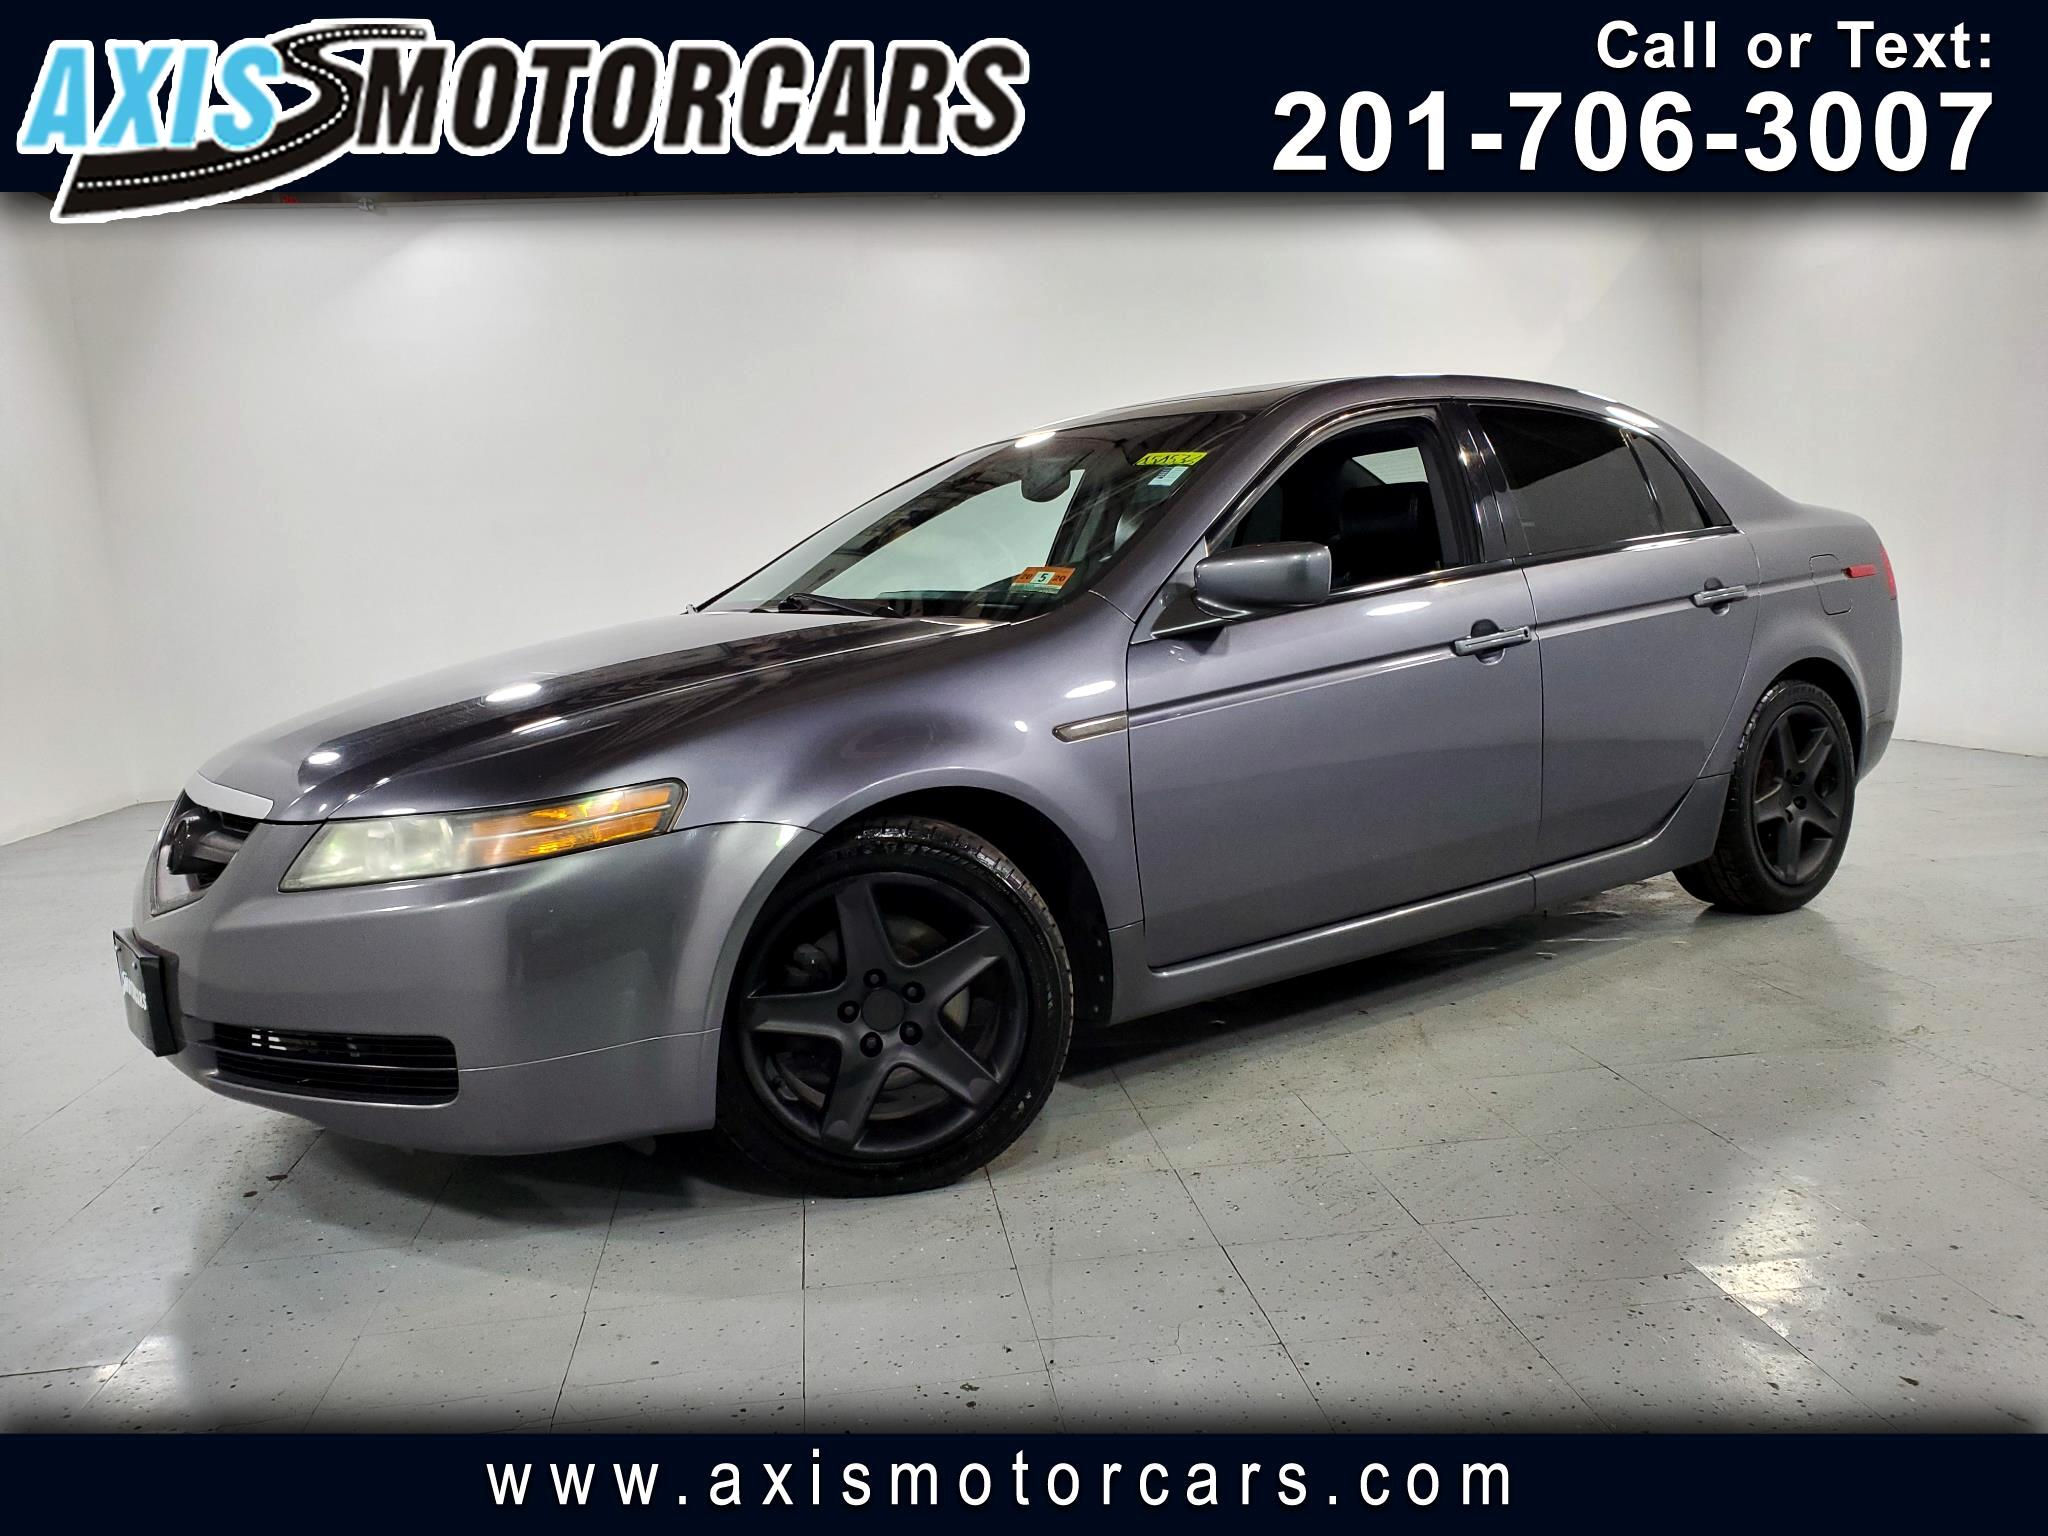 2006 Acura TL w/Sunroof Leather